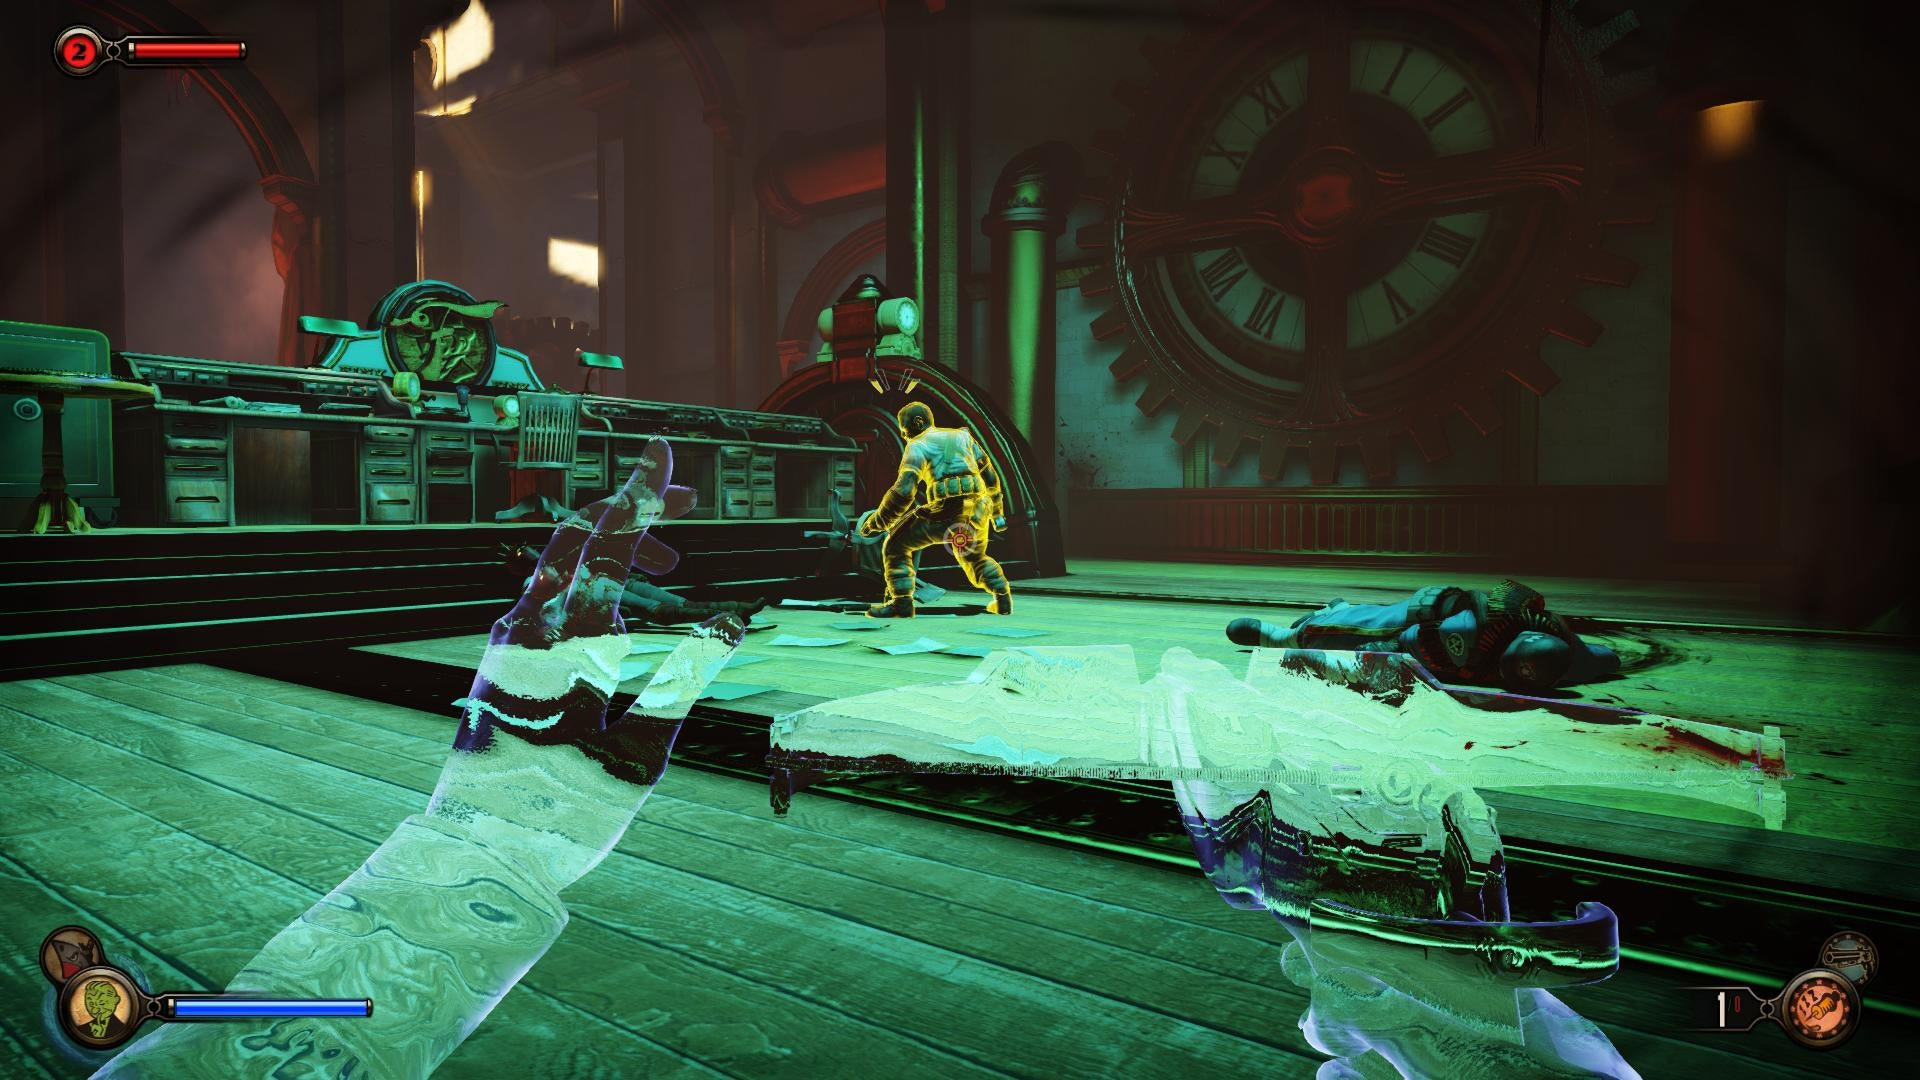 BioShock Infinite: Burial at Sea Episode 2: The Kotaku Review